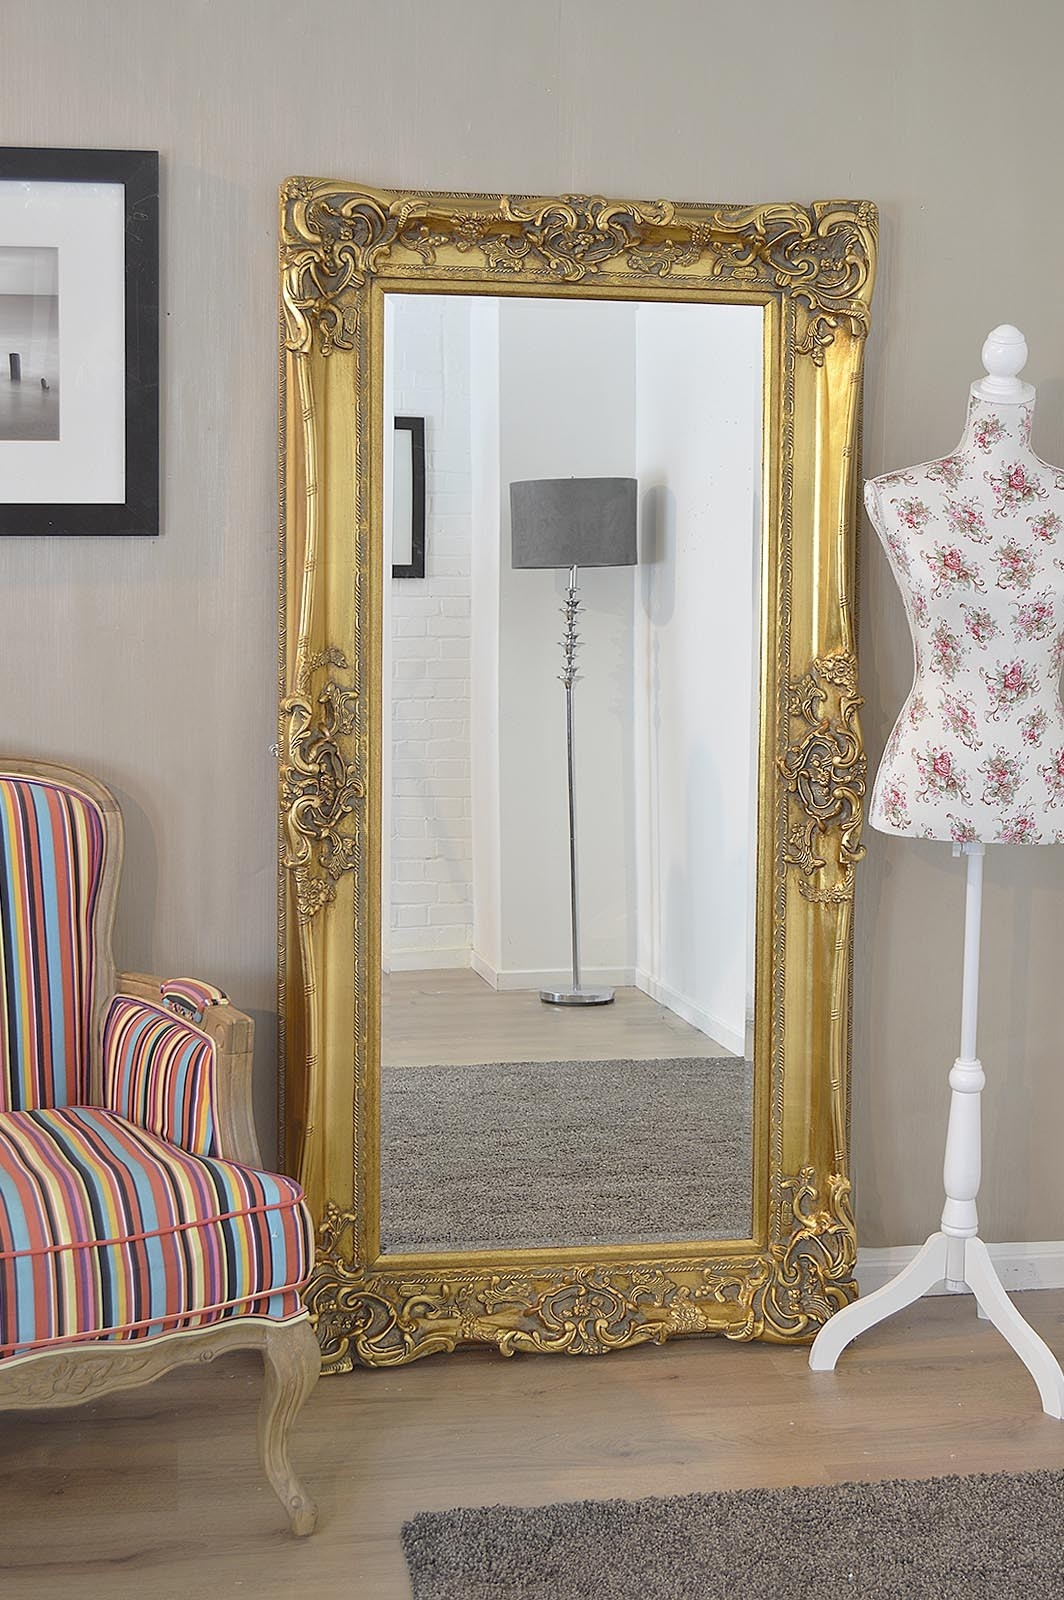 Wondrous Old Oval Mirror Antique Cheval Wall Mirror Likewise Grey Within Vintage Mirrors For Sale (View 11 of 15)